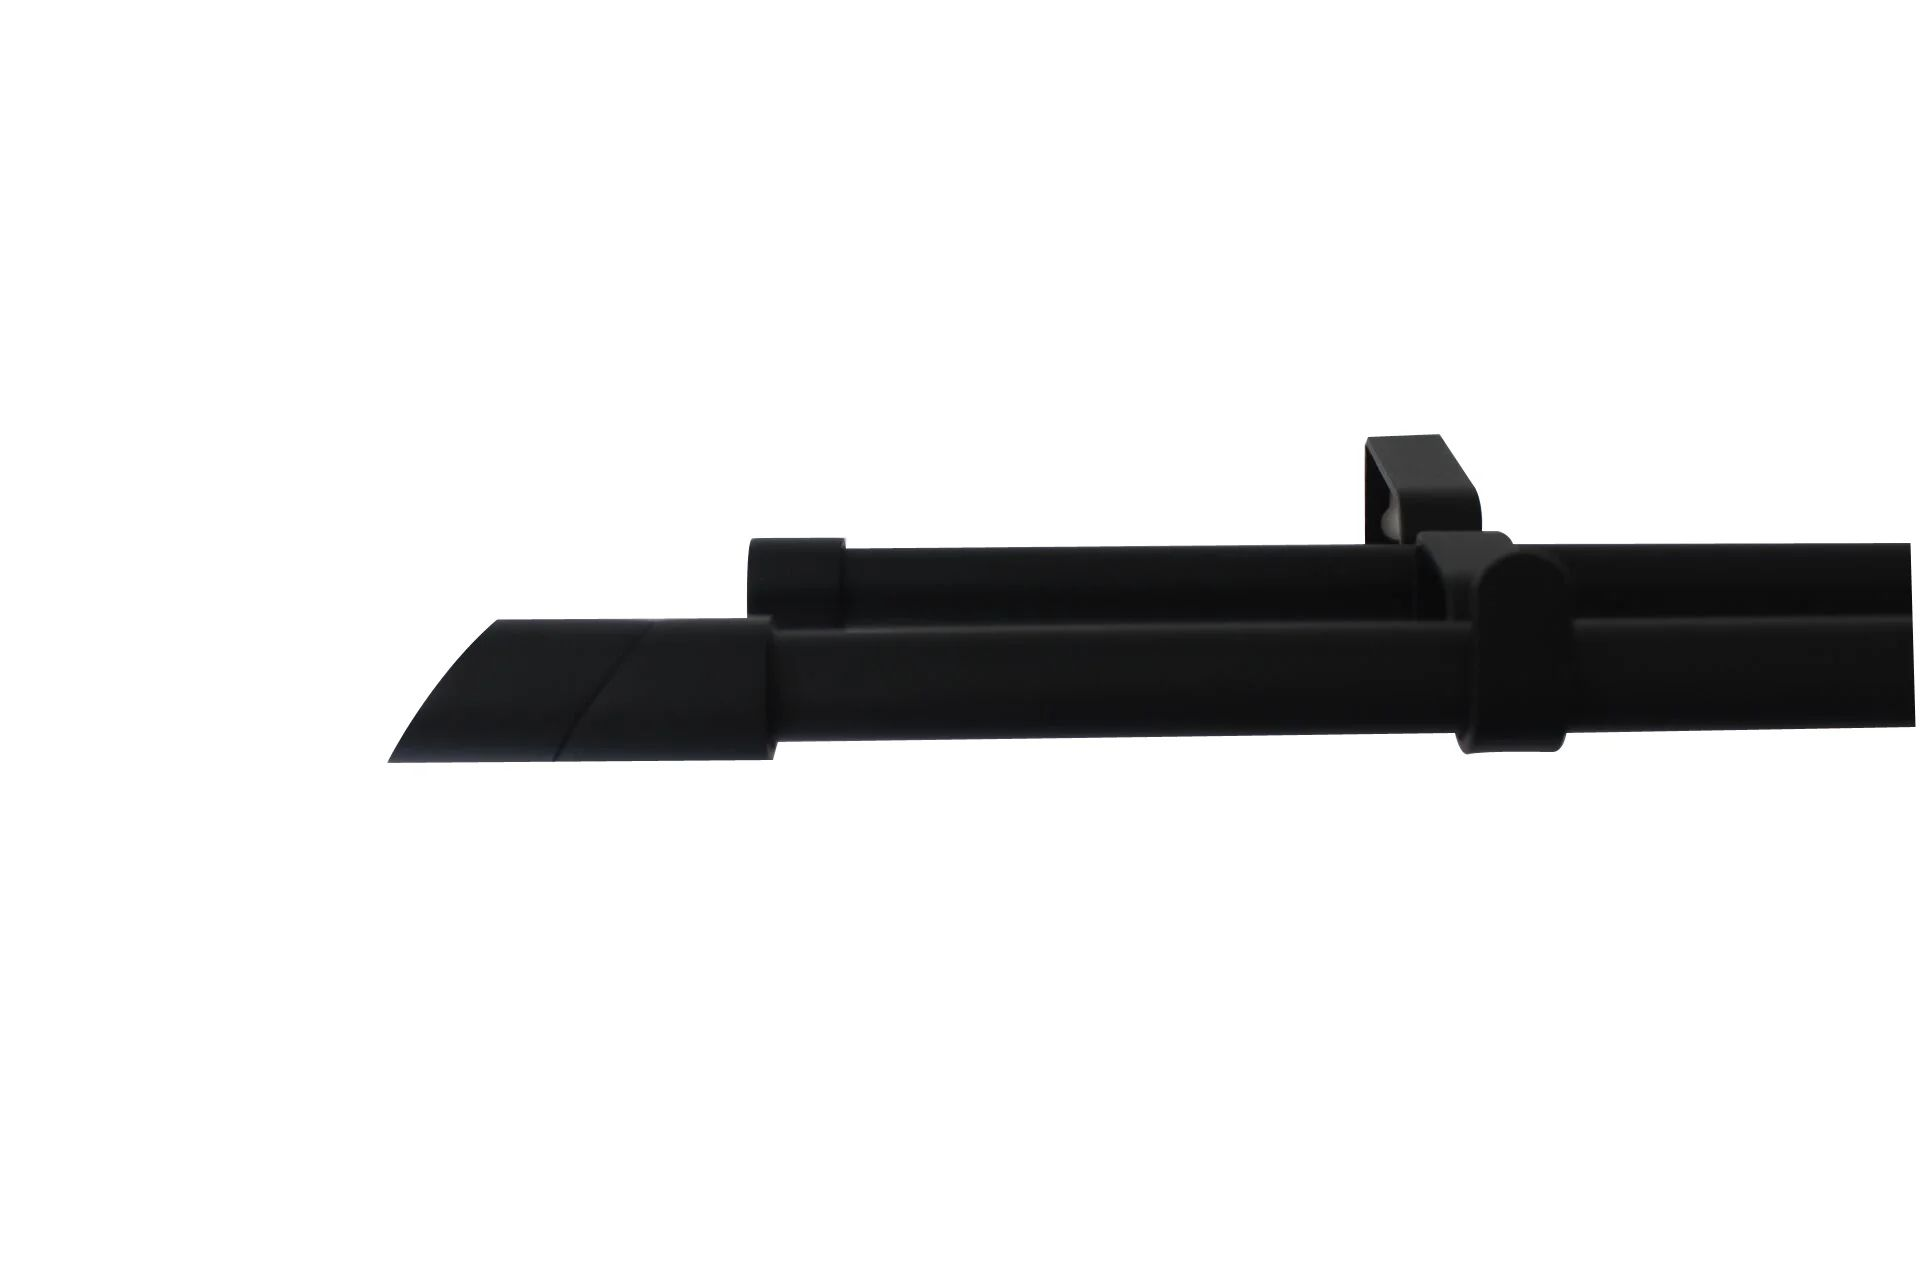 kit de tringle a rideau double twin diam 16 19 mm noir mat 120 a 210 cm